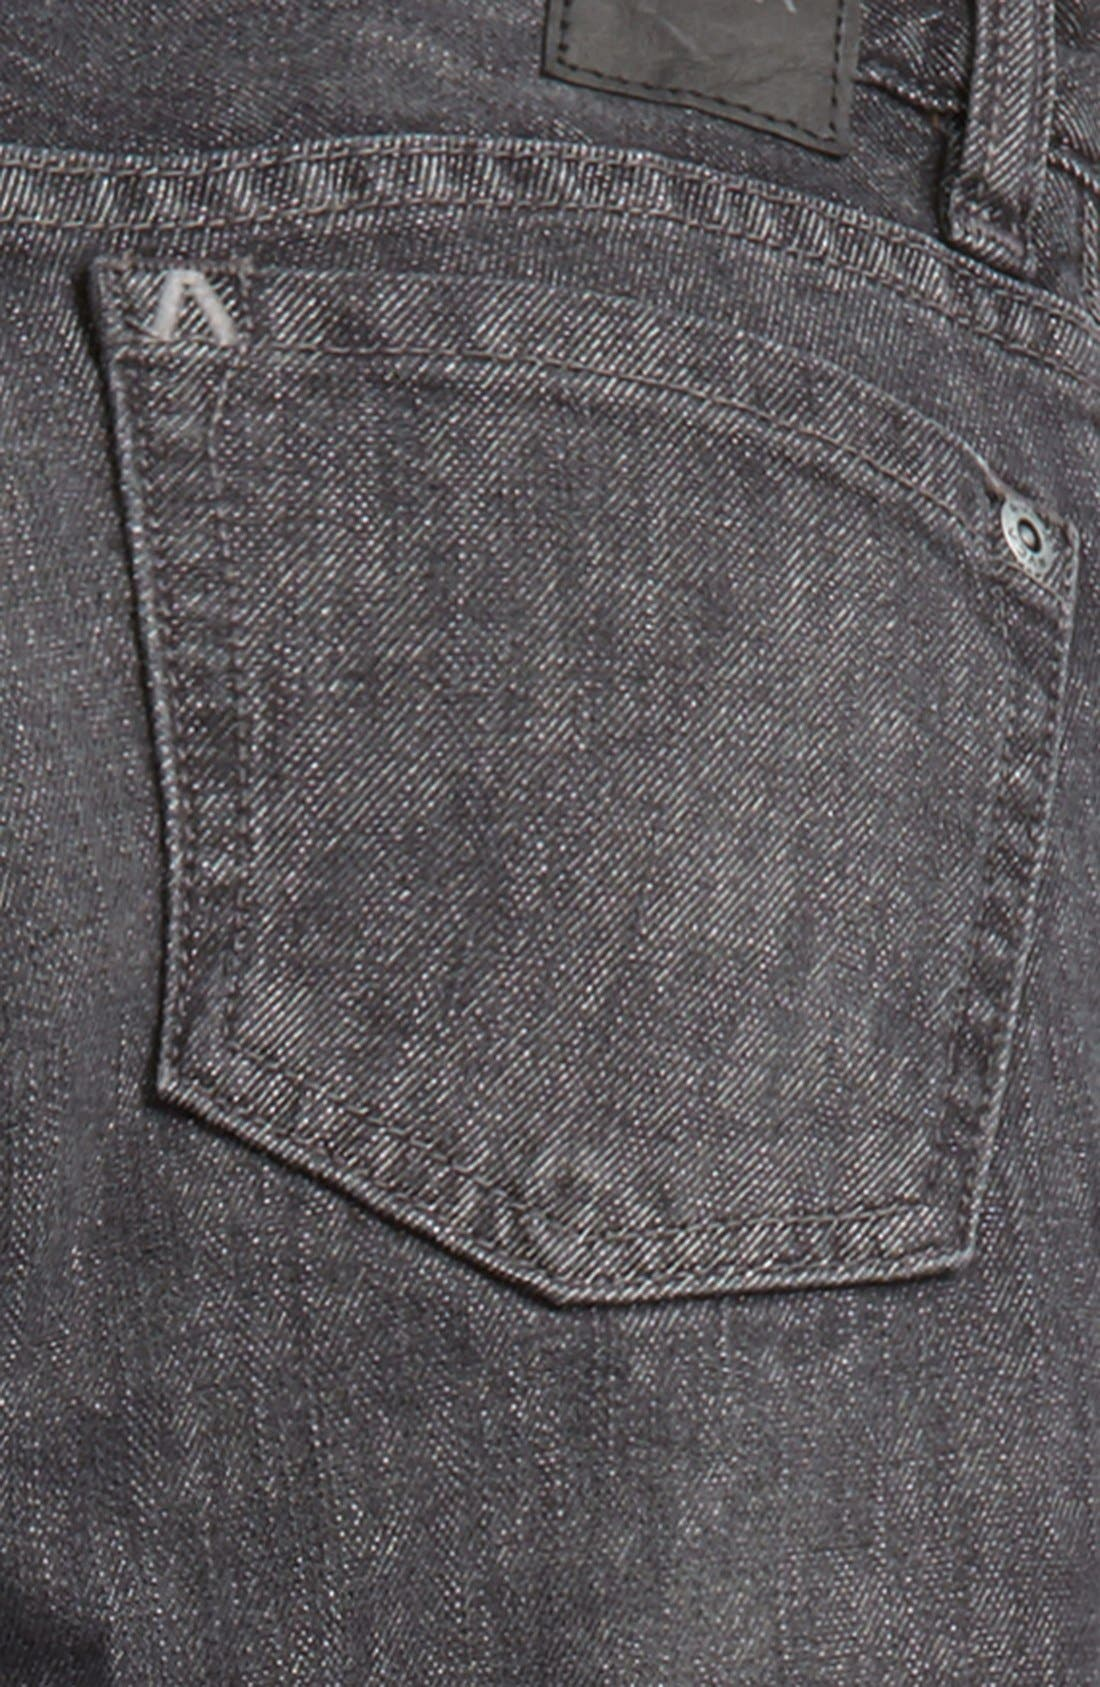 'Daggers' Slim Fit Jeans,                             Alternate thumbnail 5, color,